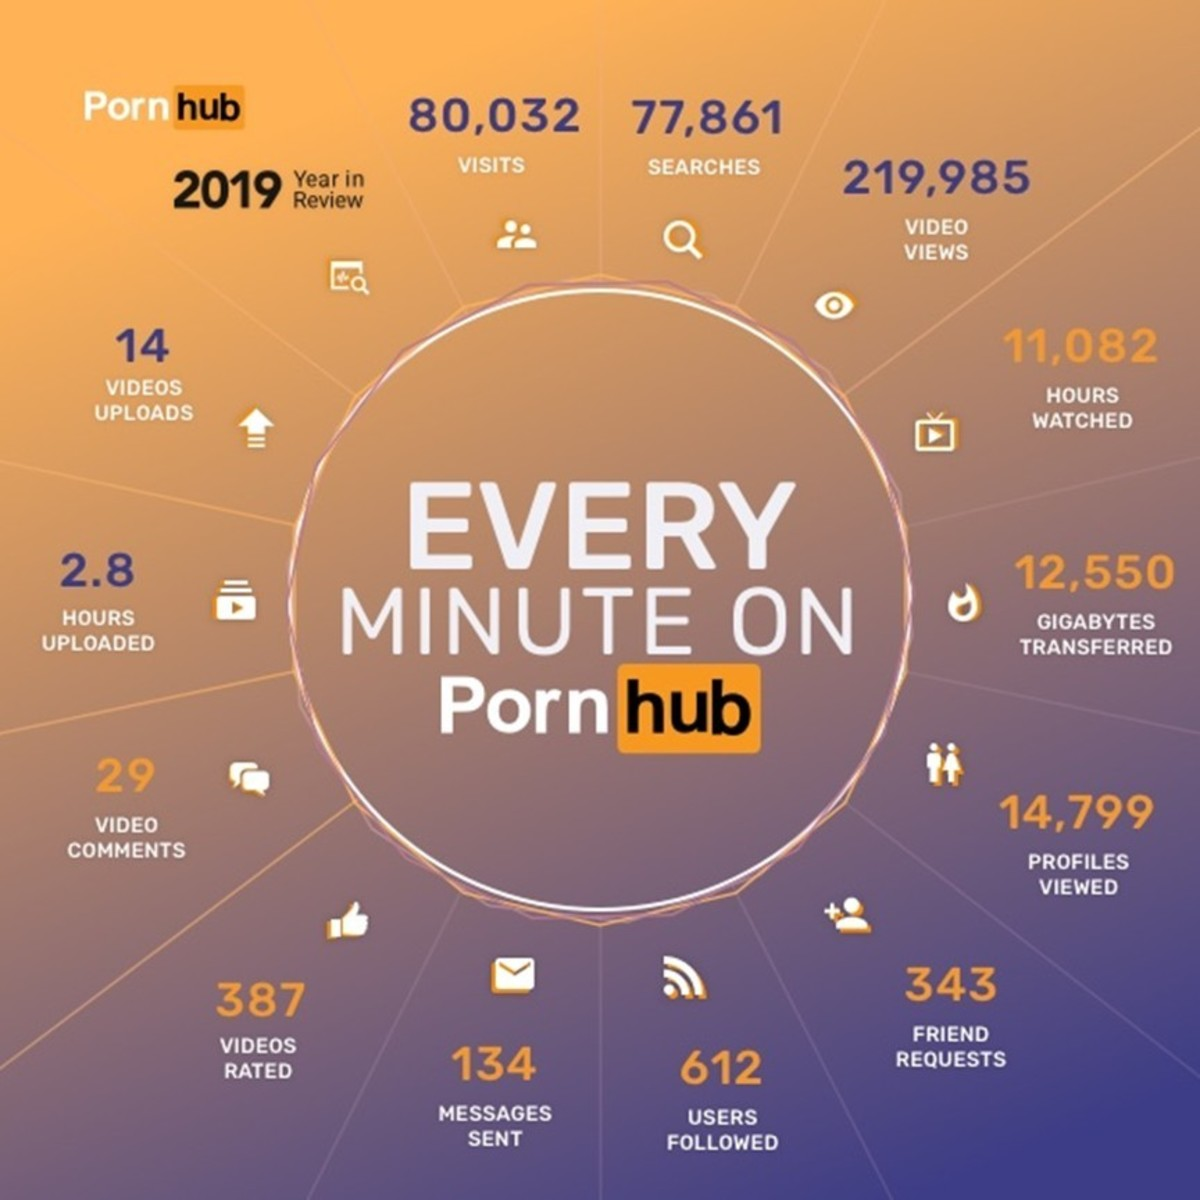 Porn Hub's 2019 Year in Review.